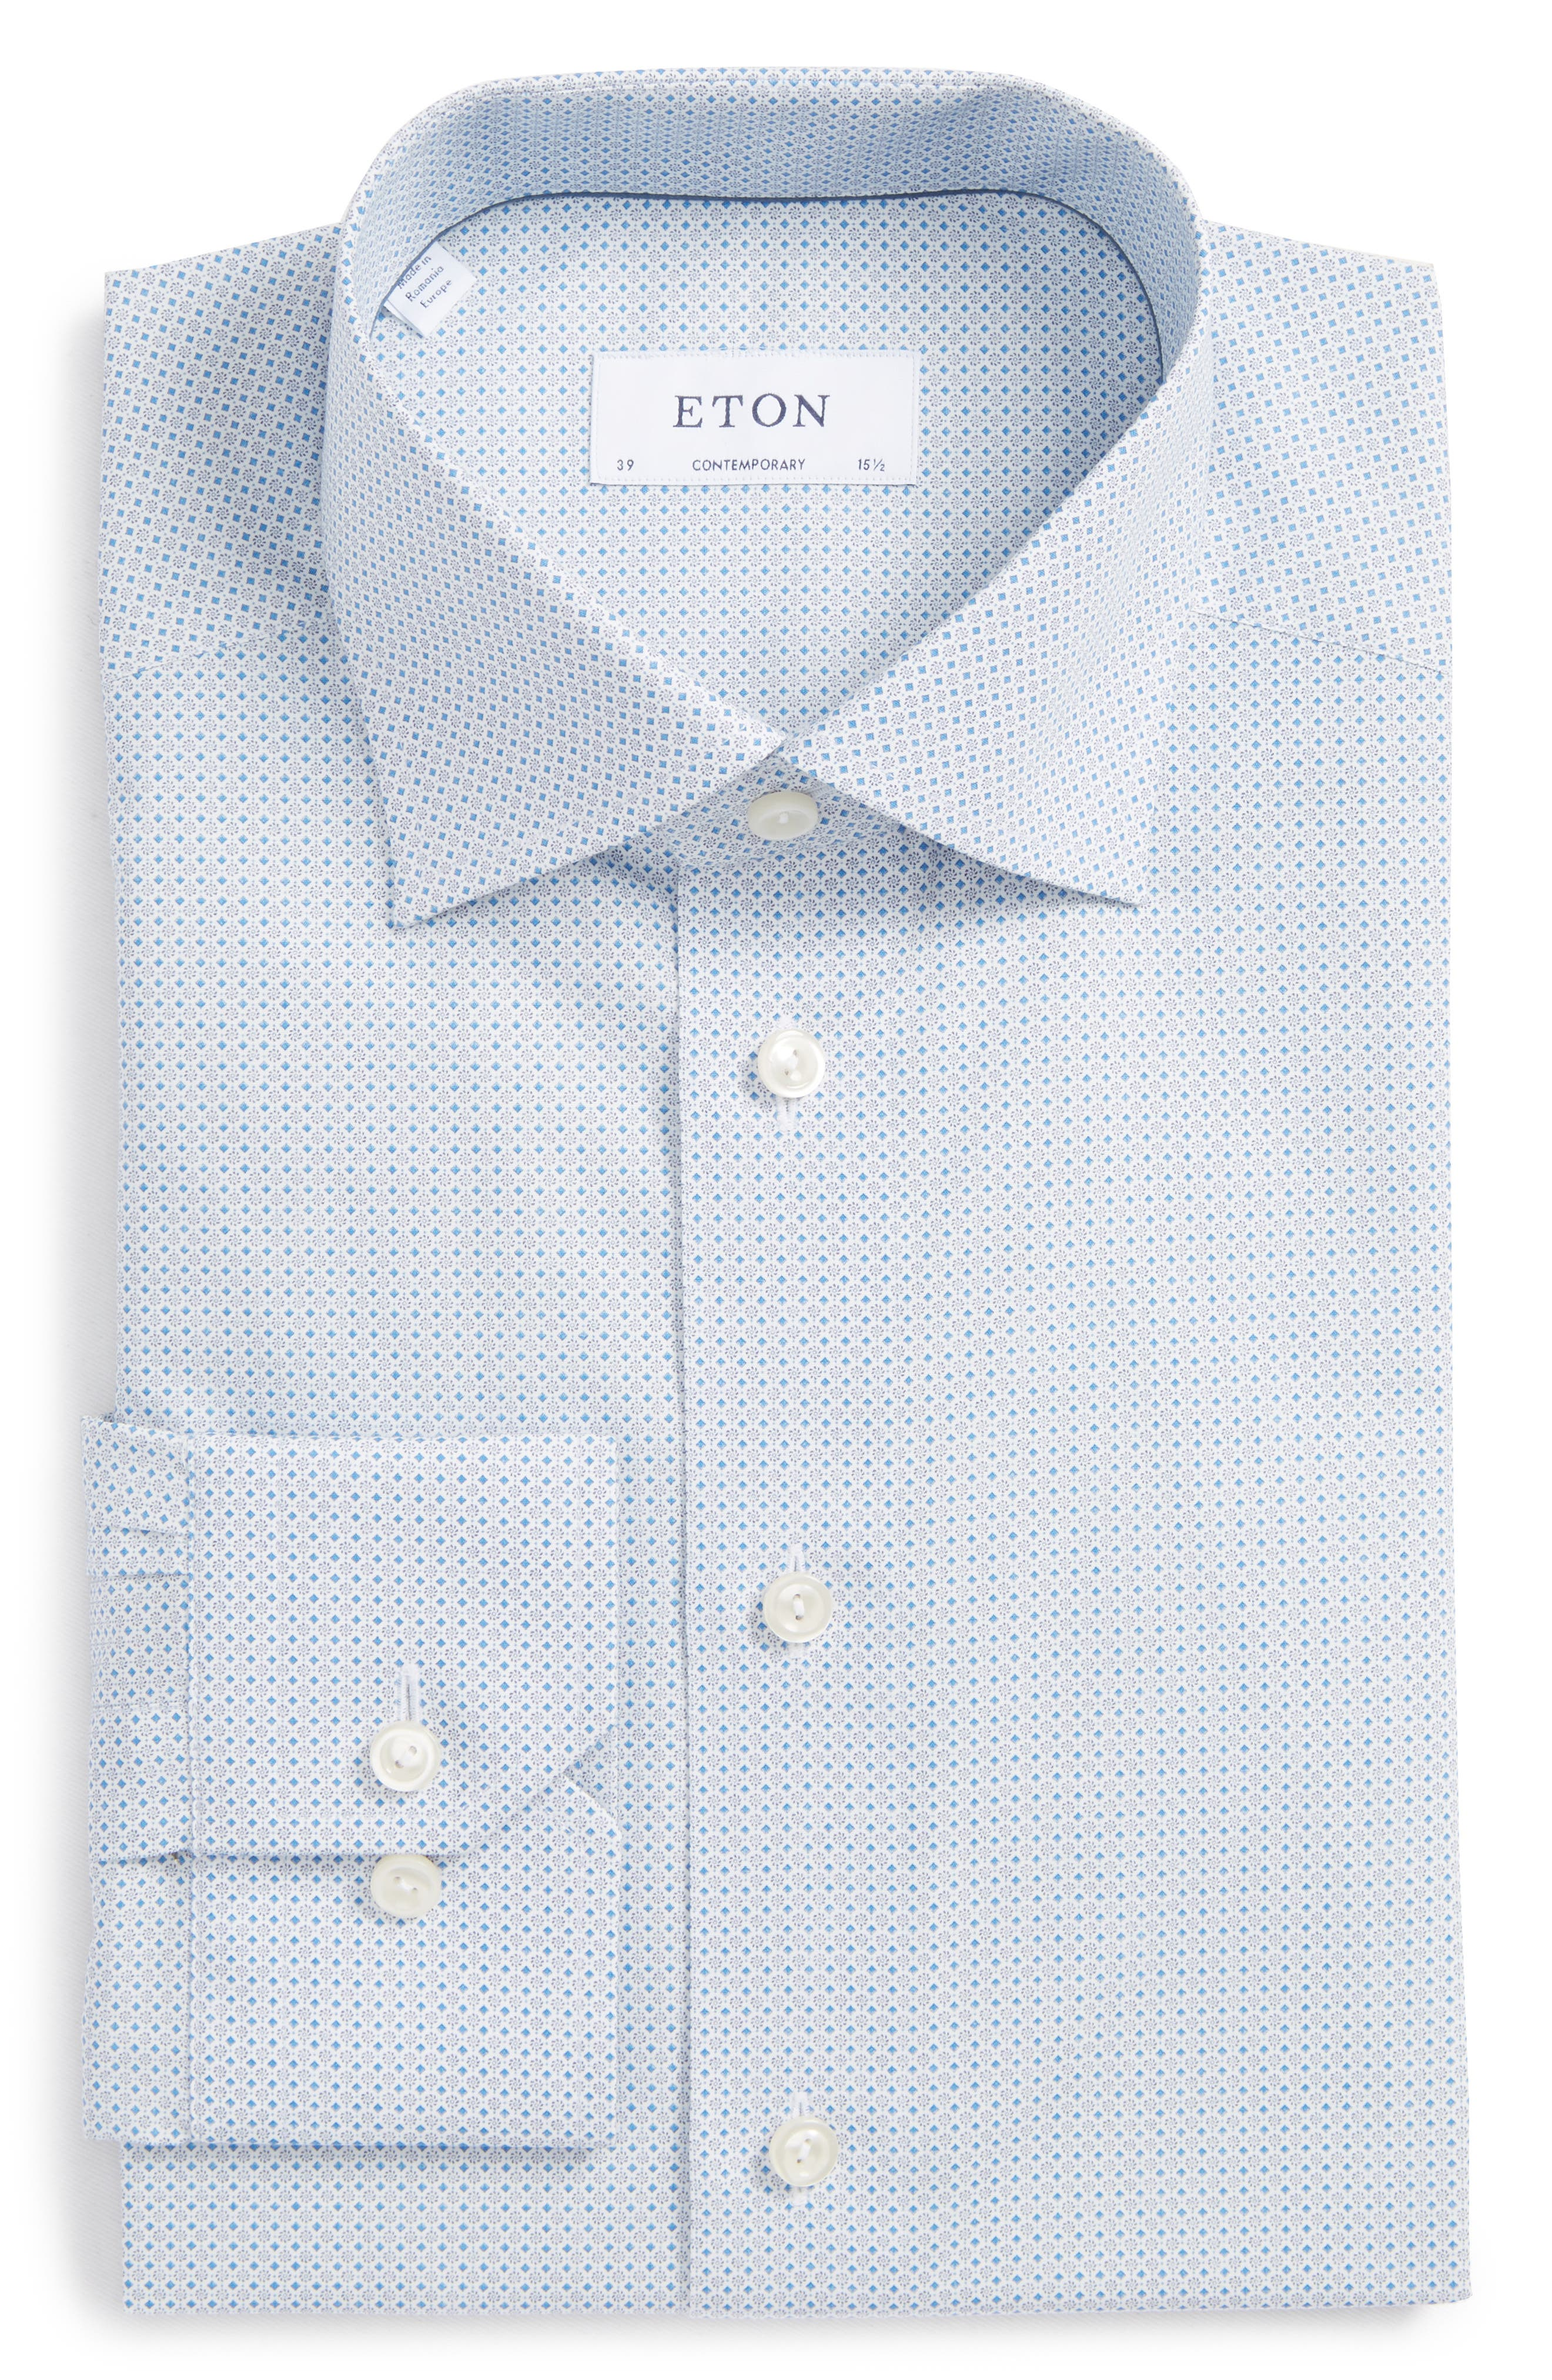 Contemporary Fit Geometric Dress Shirt,                             Alternate thumbnail 6, color,                             Blue